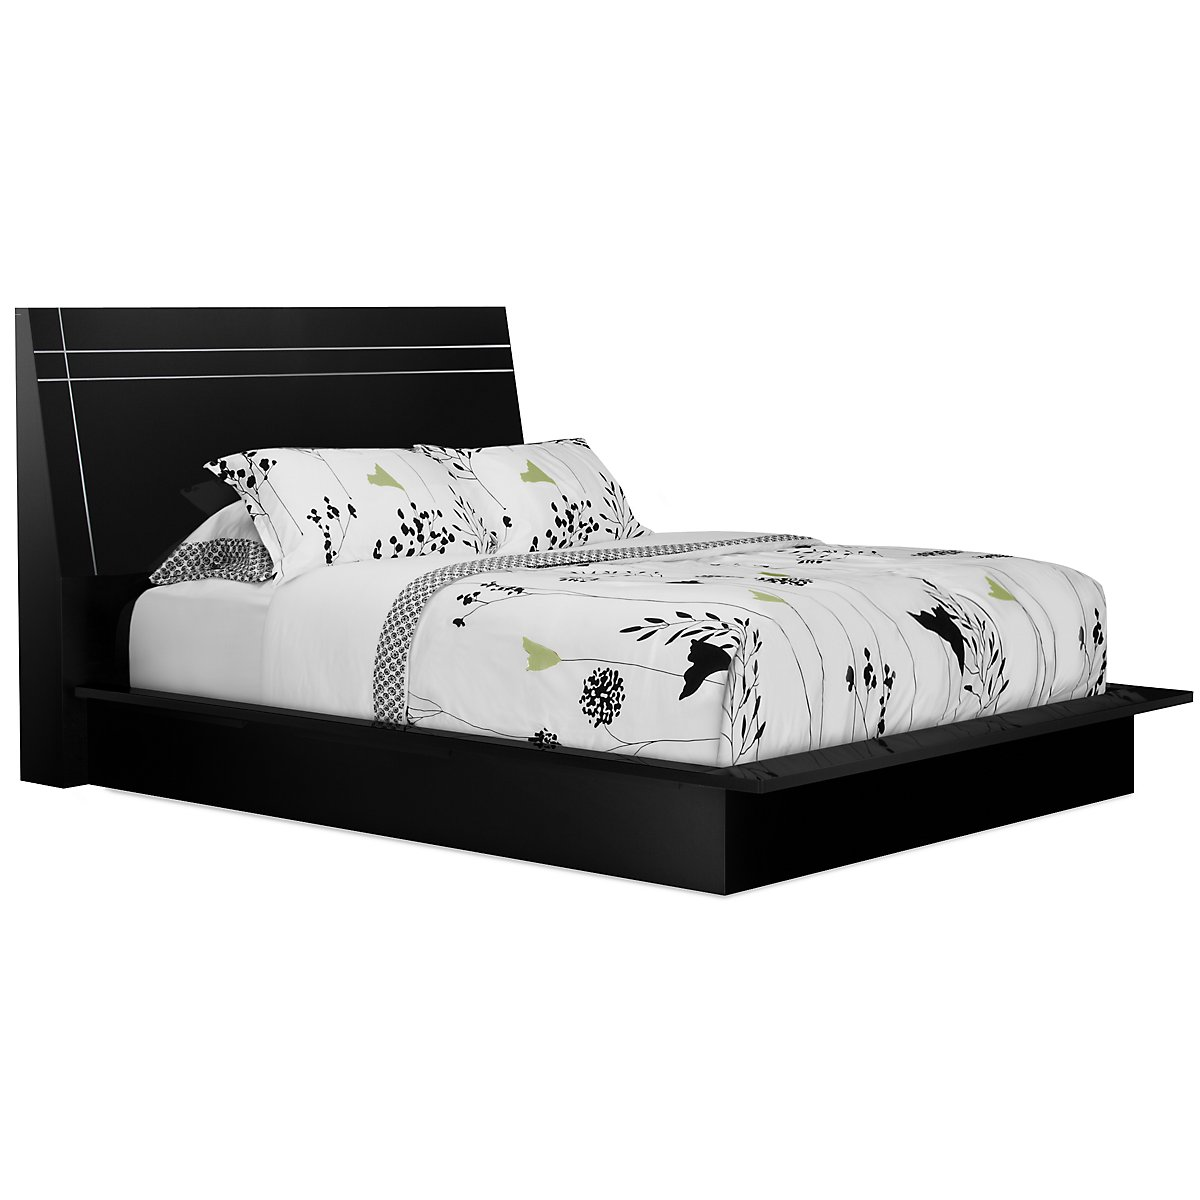 city furniture dimora black wood platform bed - dimora black wood platform bed